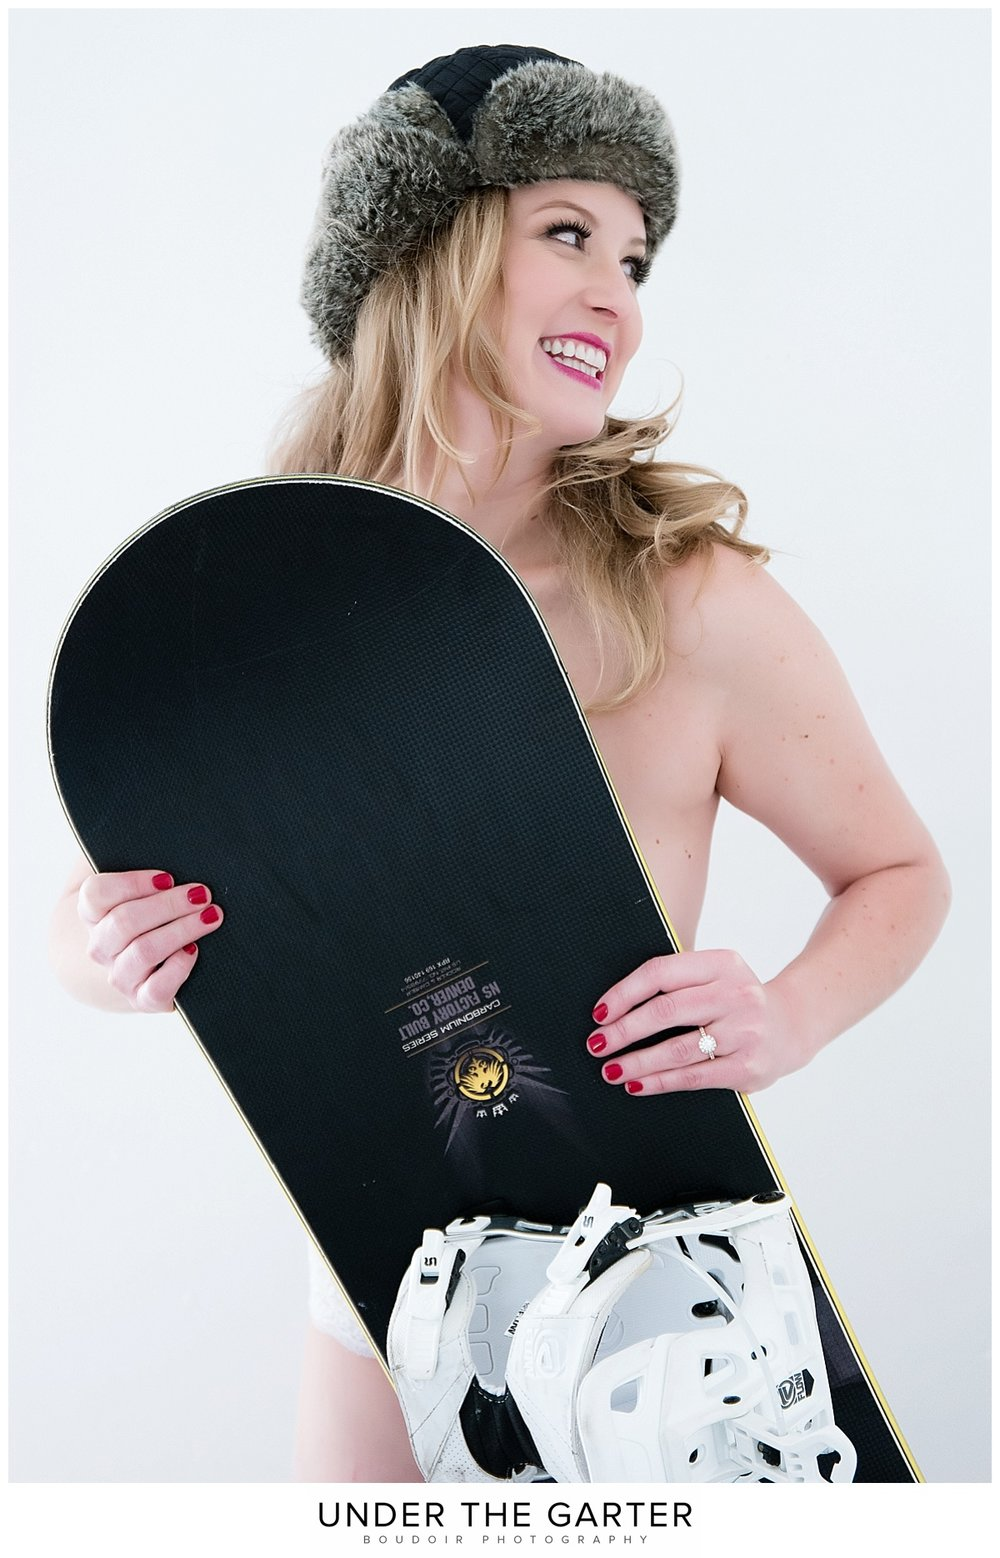 boudoir photography denver snowboard smile.jpg